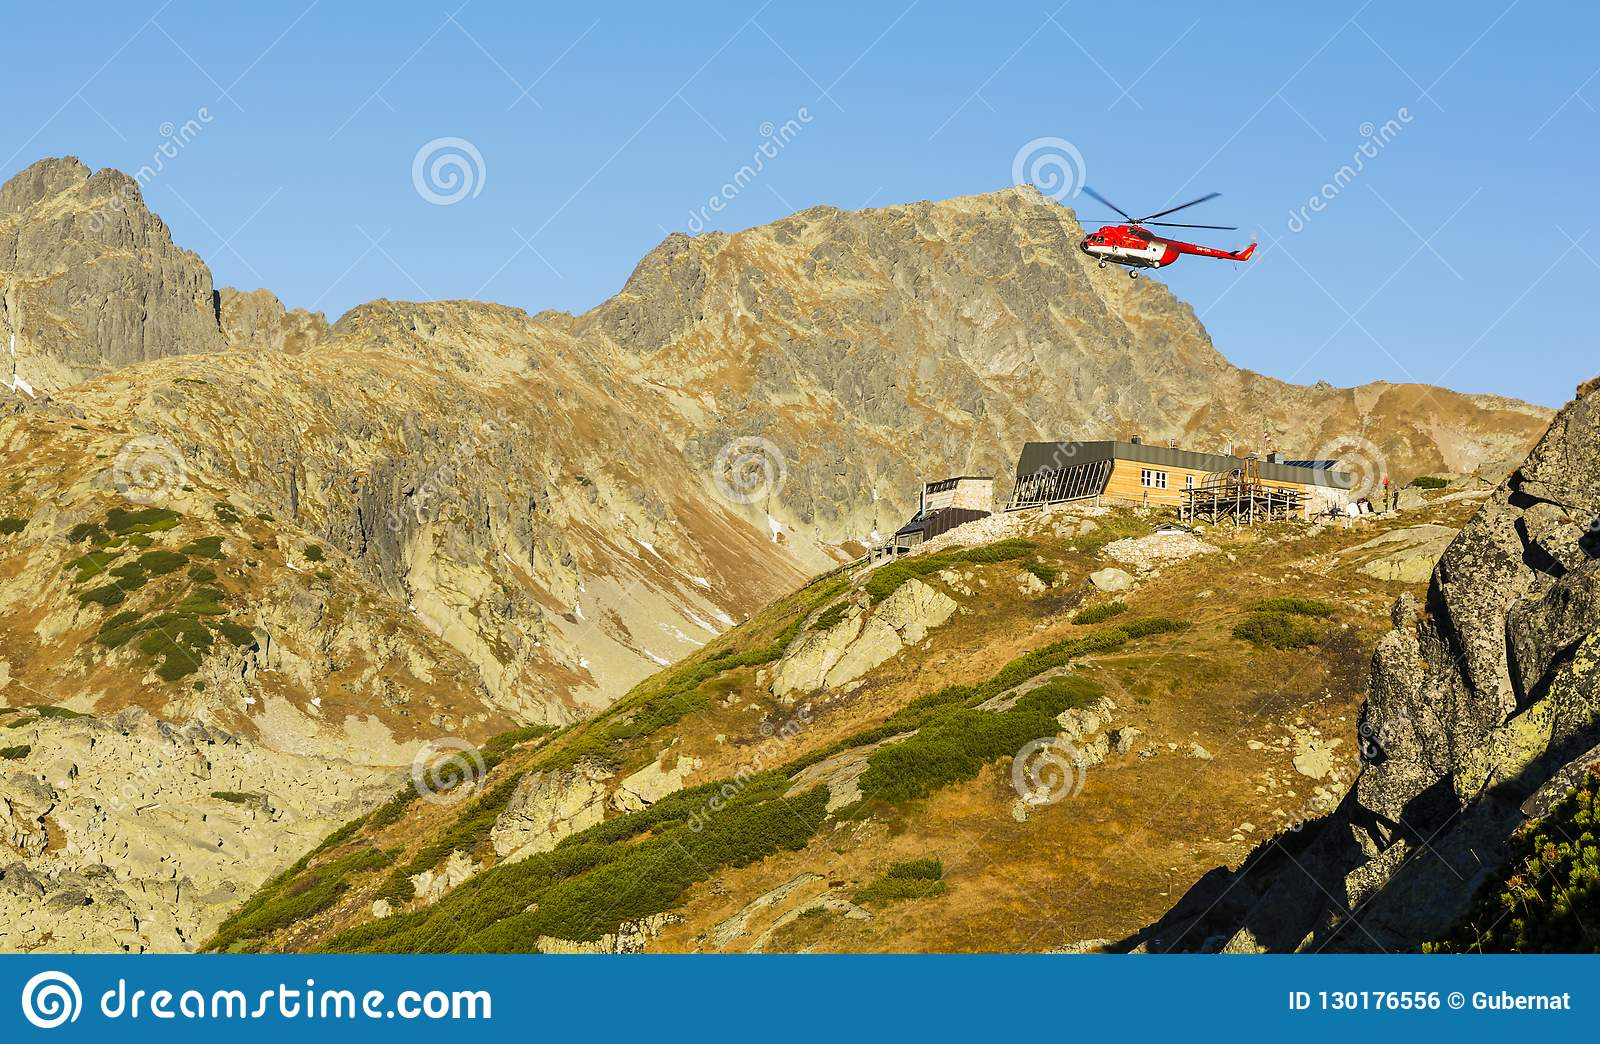 Helicopter OM EVA Type Mil Mi 8T Above The Shelter Zbojnicka Chata In